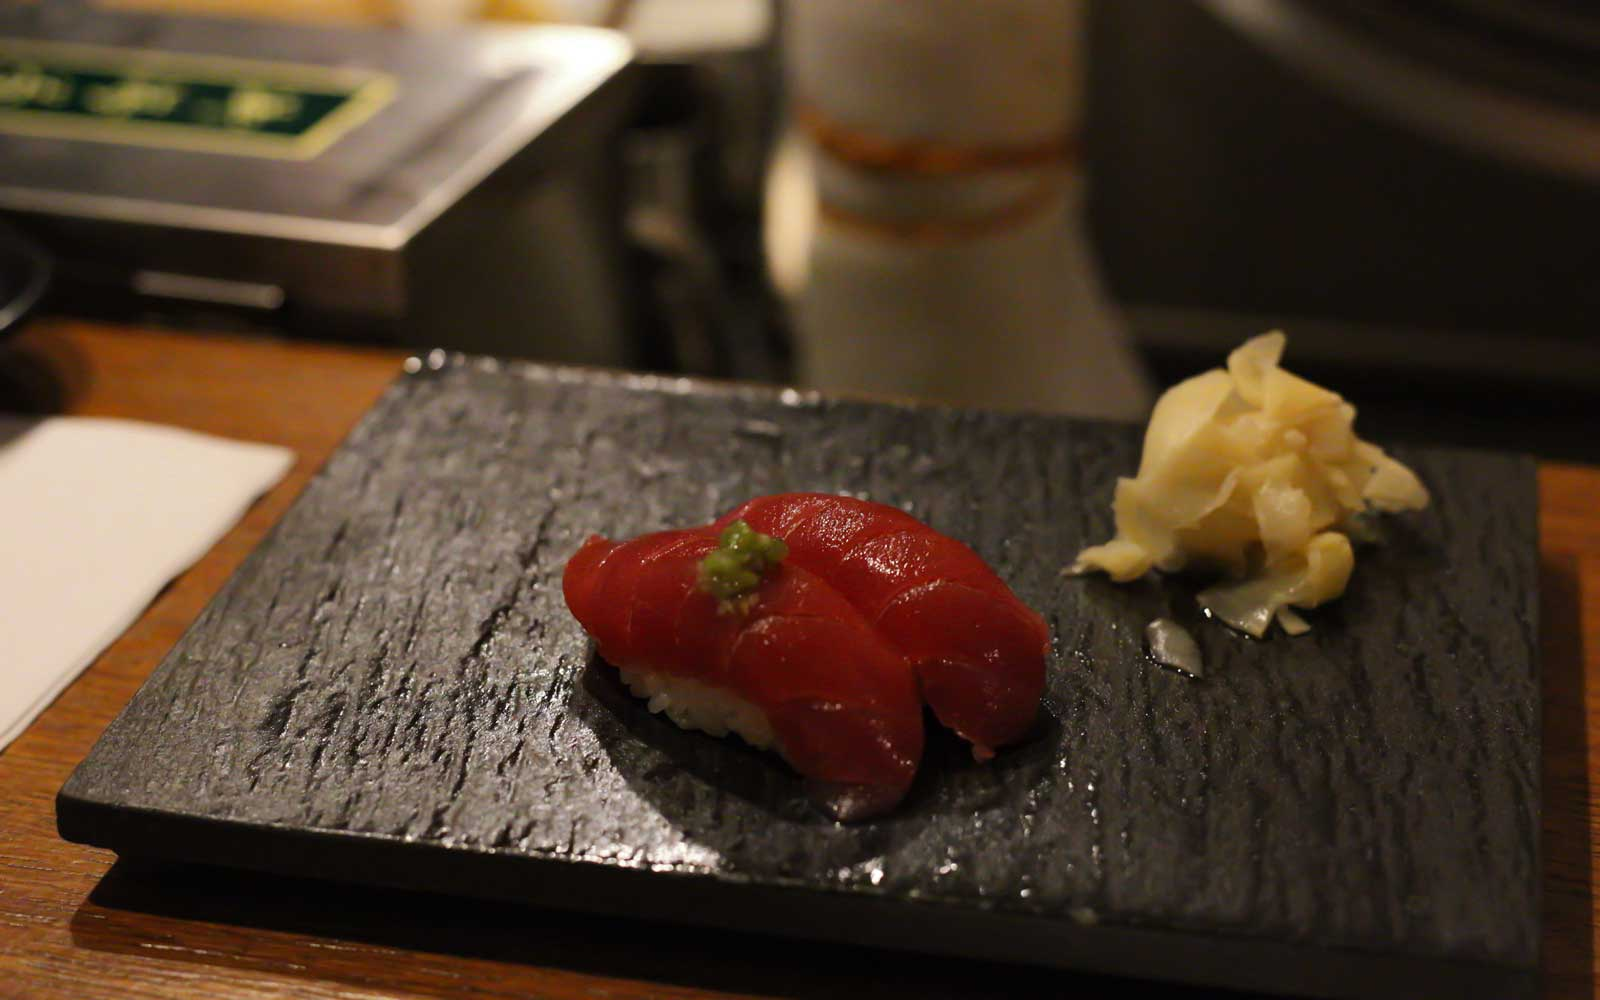 A course from the 12-piece omakase at Sushi by Bou at the Sanctuary Hotel.